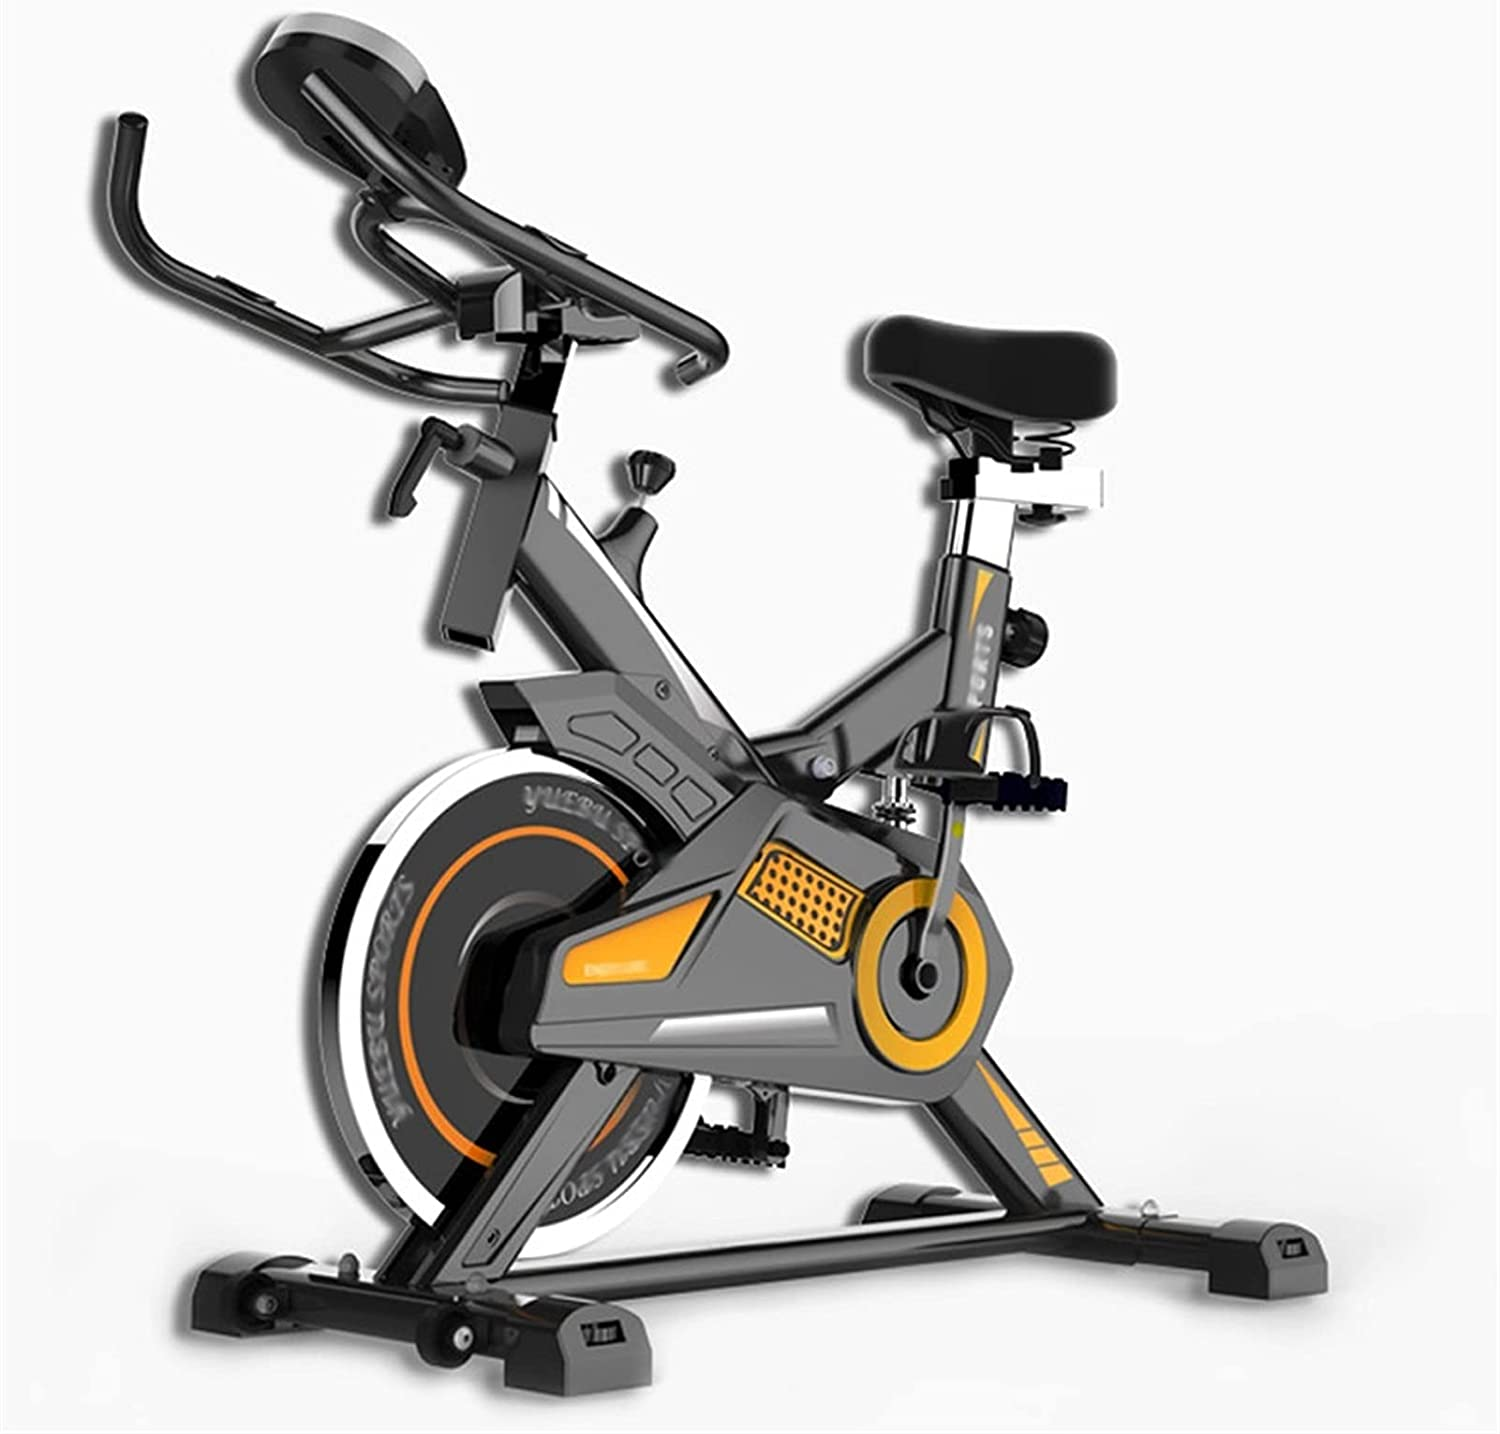 HMBB Exercise Bikes Outstanding Bike San Francisco Mall Indoor Cycling